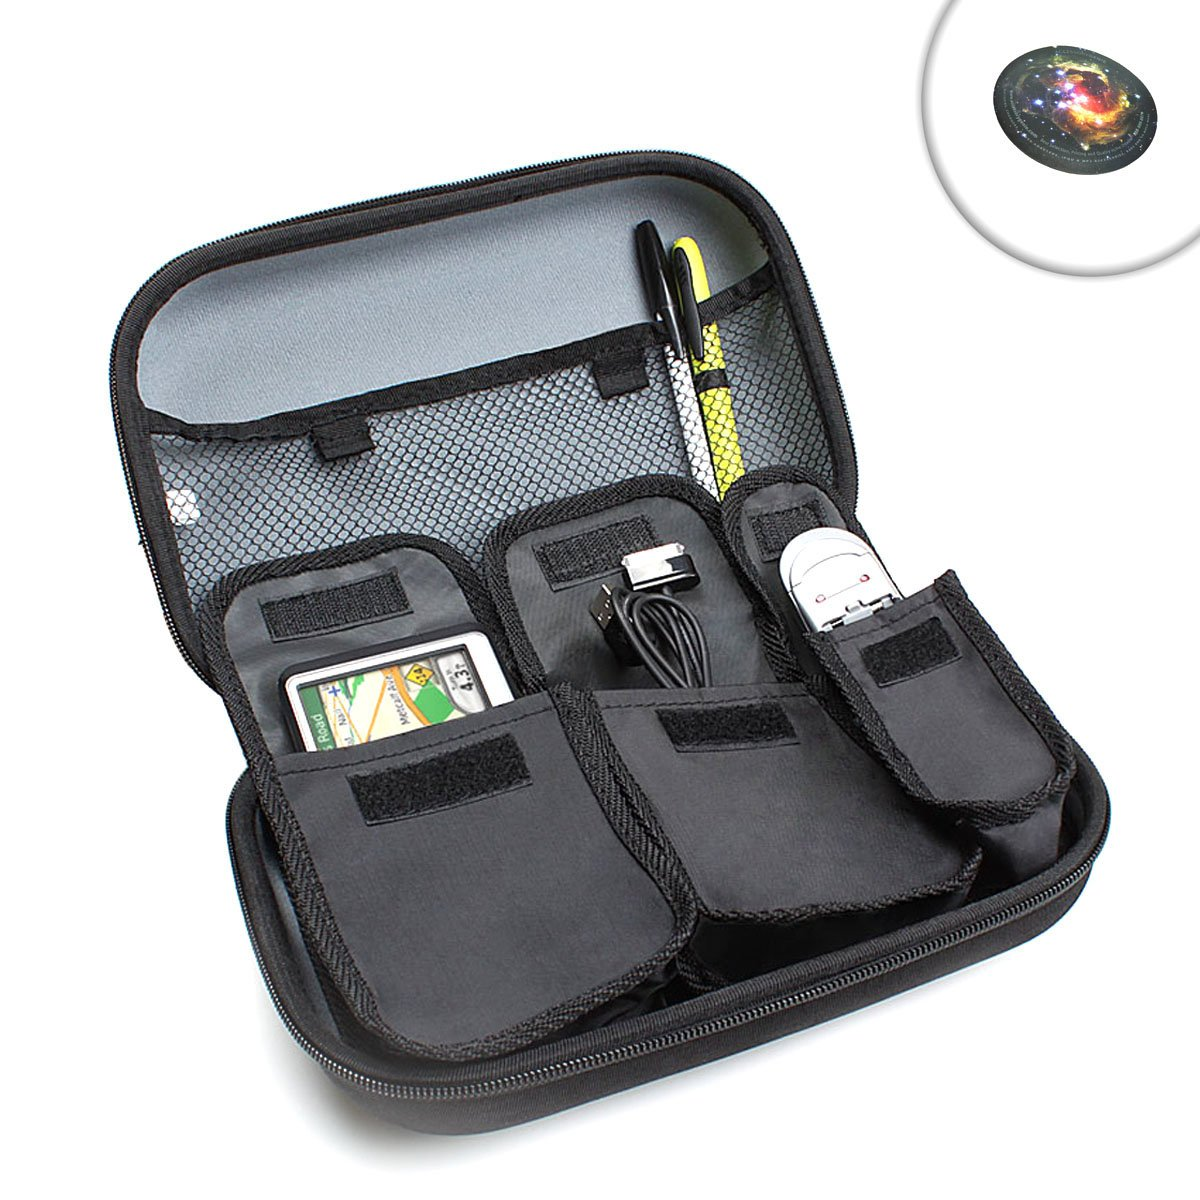 USA Gear Hard Carrying Case for 5-Inch GPS Works with Select Magellan GPS Navigators Maestro, Roadmate, Explorist & Crossover Models & Accessories